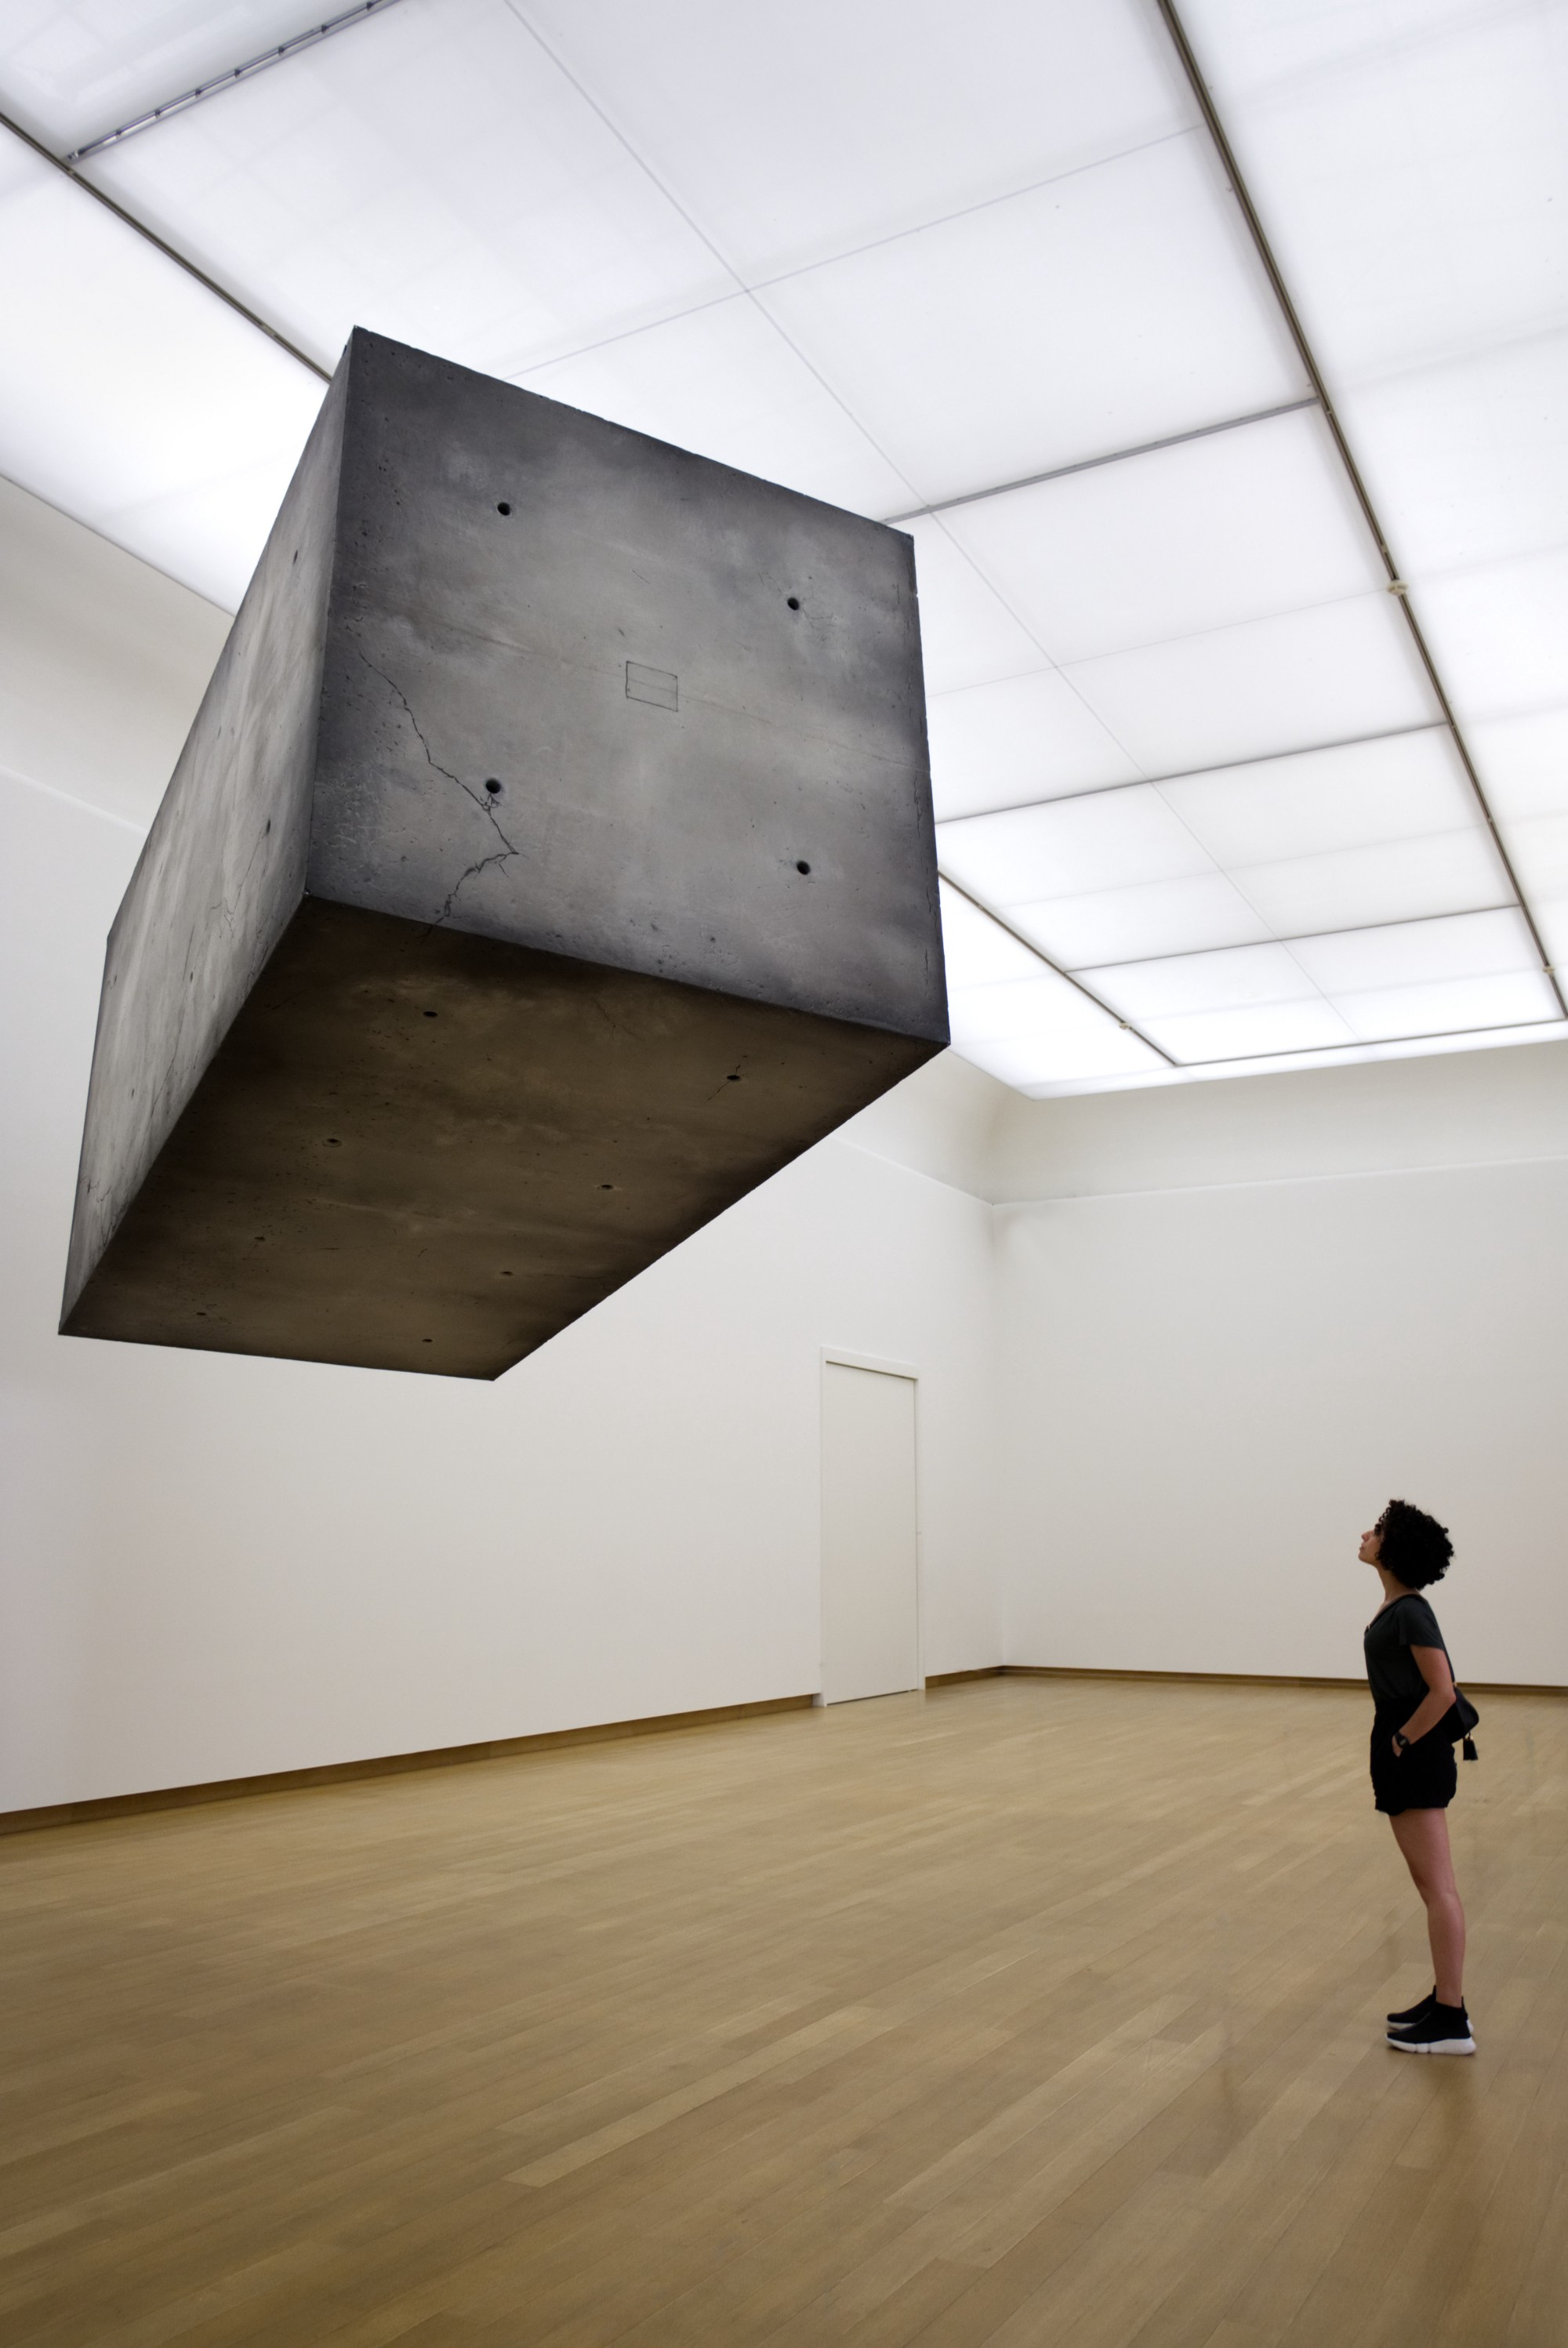 greyish cement cube floating 10 feet in the air, in a well lit, white room.